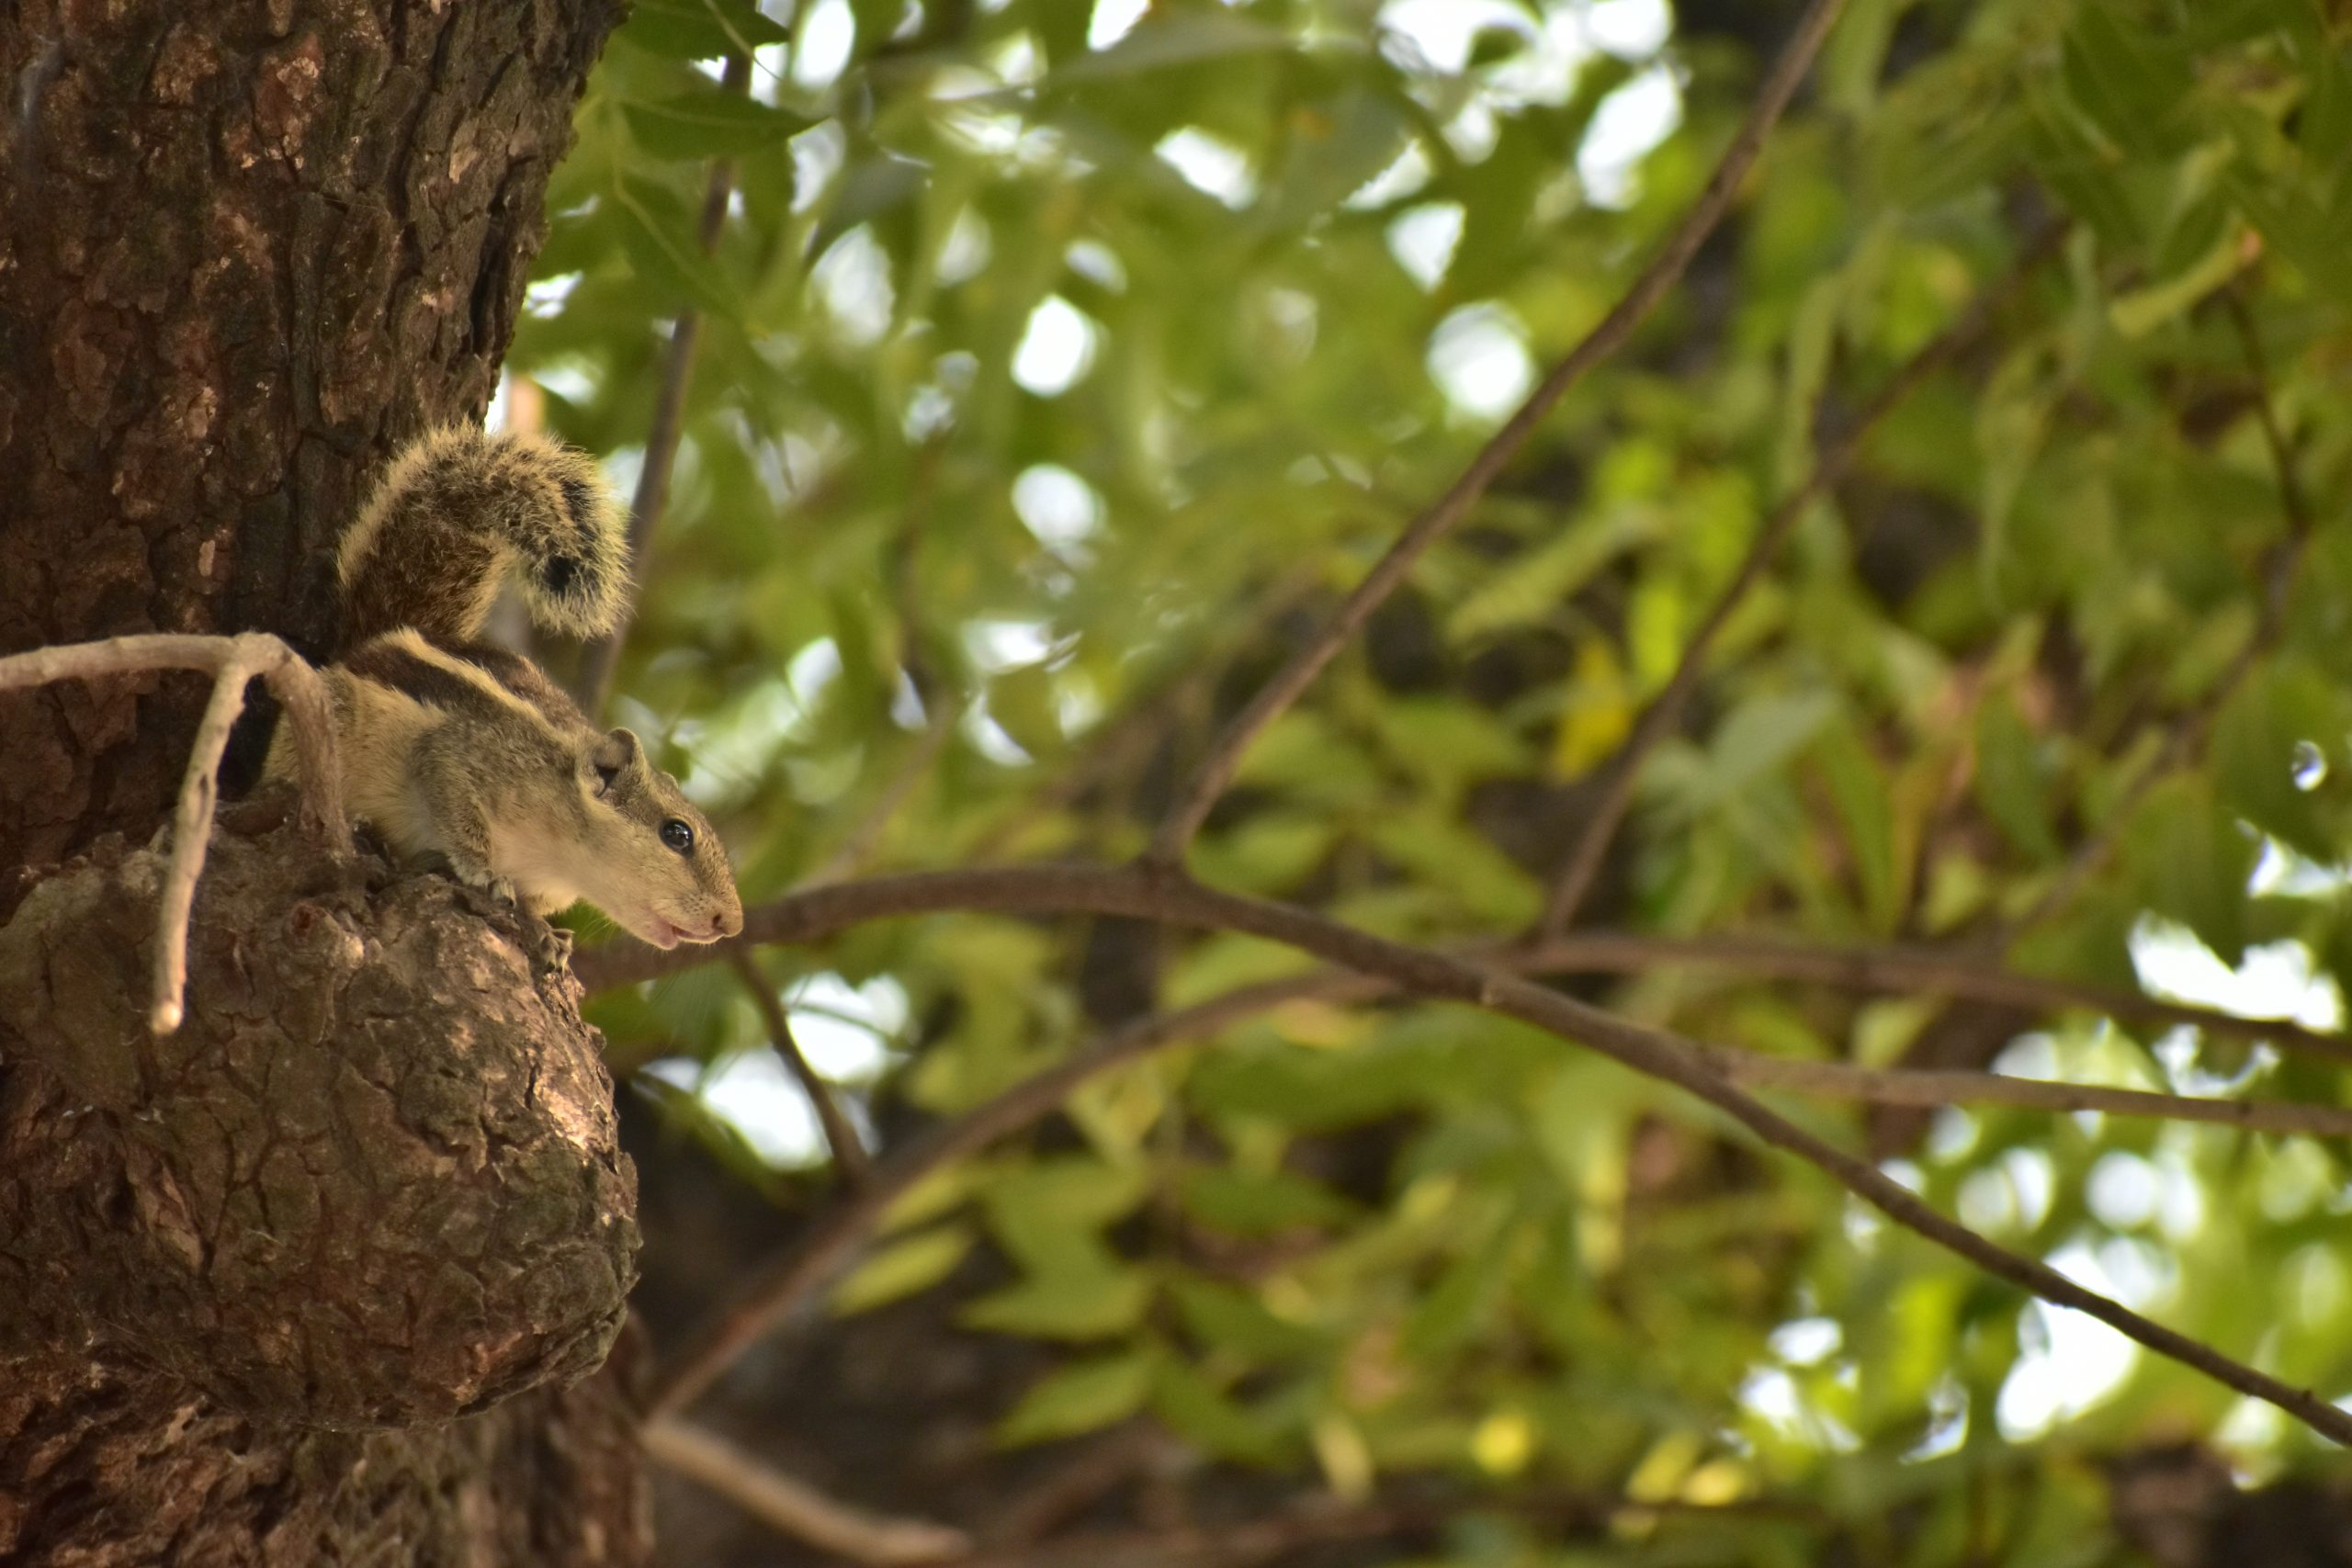 A squirrel on a tree